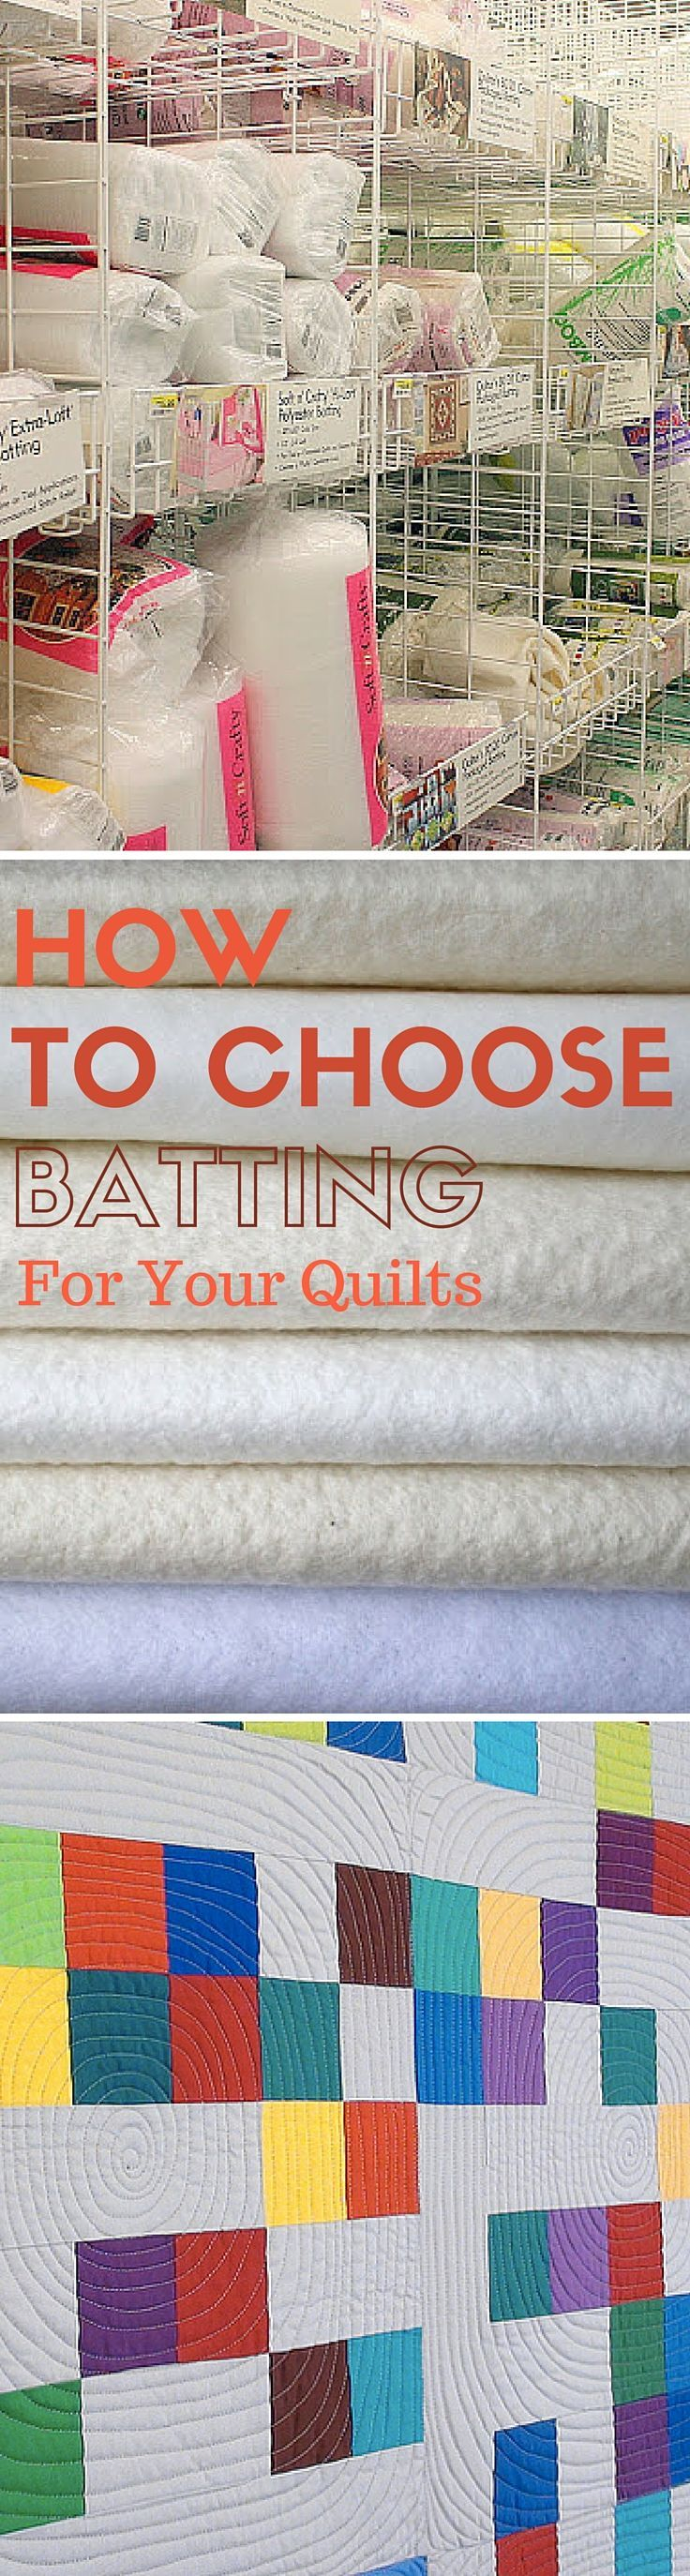 Free Tutorial: How To Choose Batting For Your Quilts